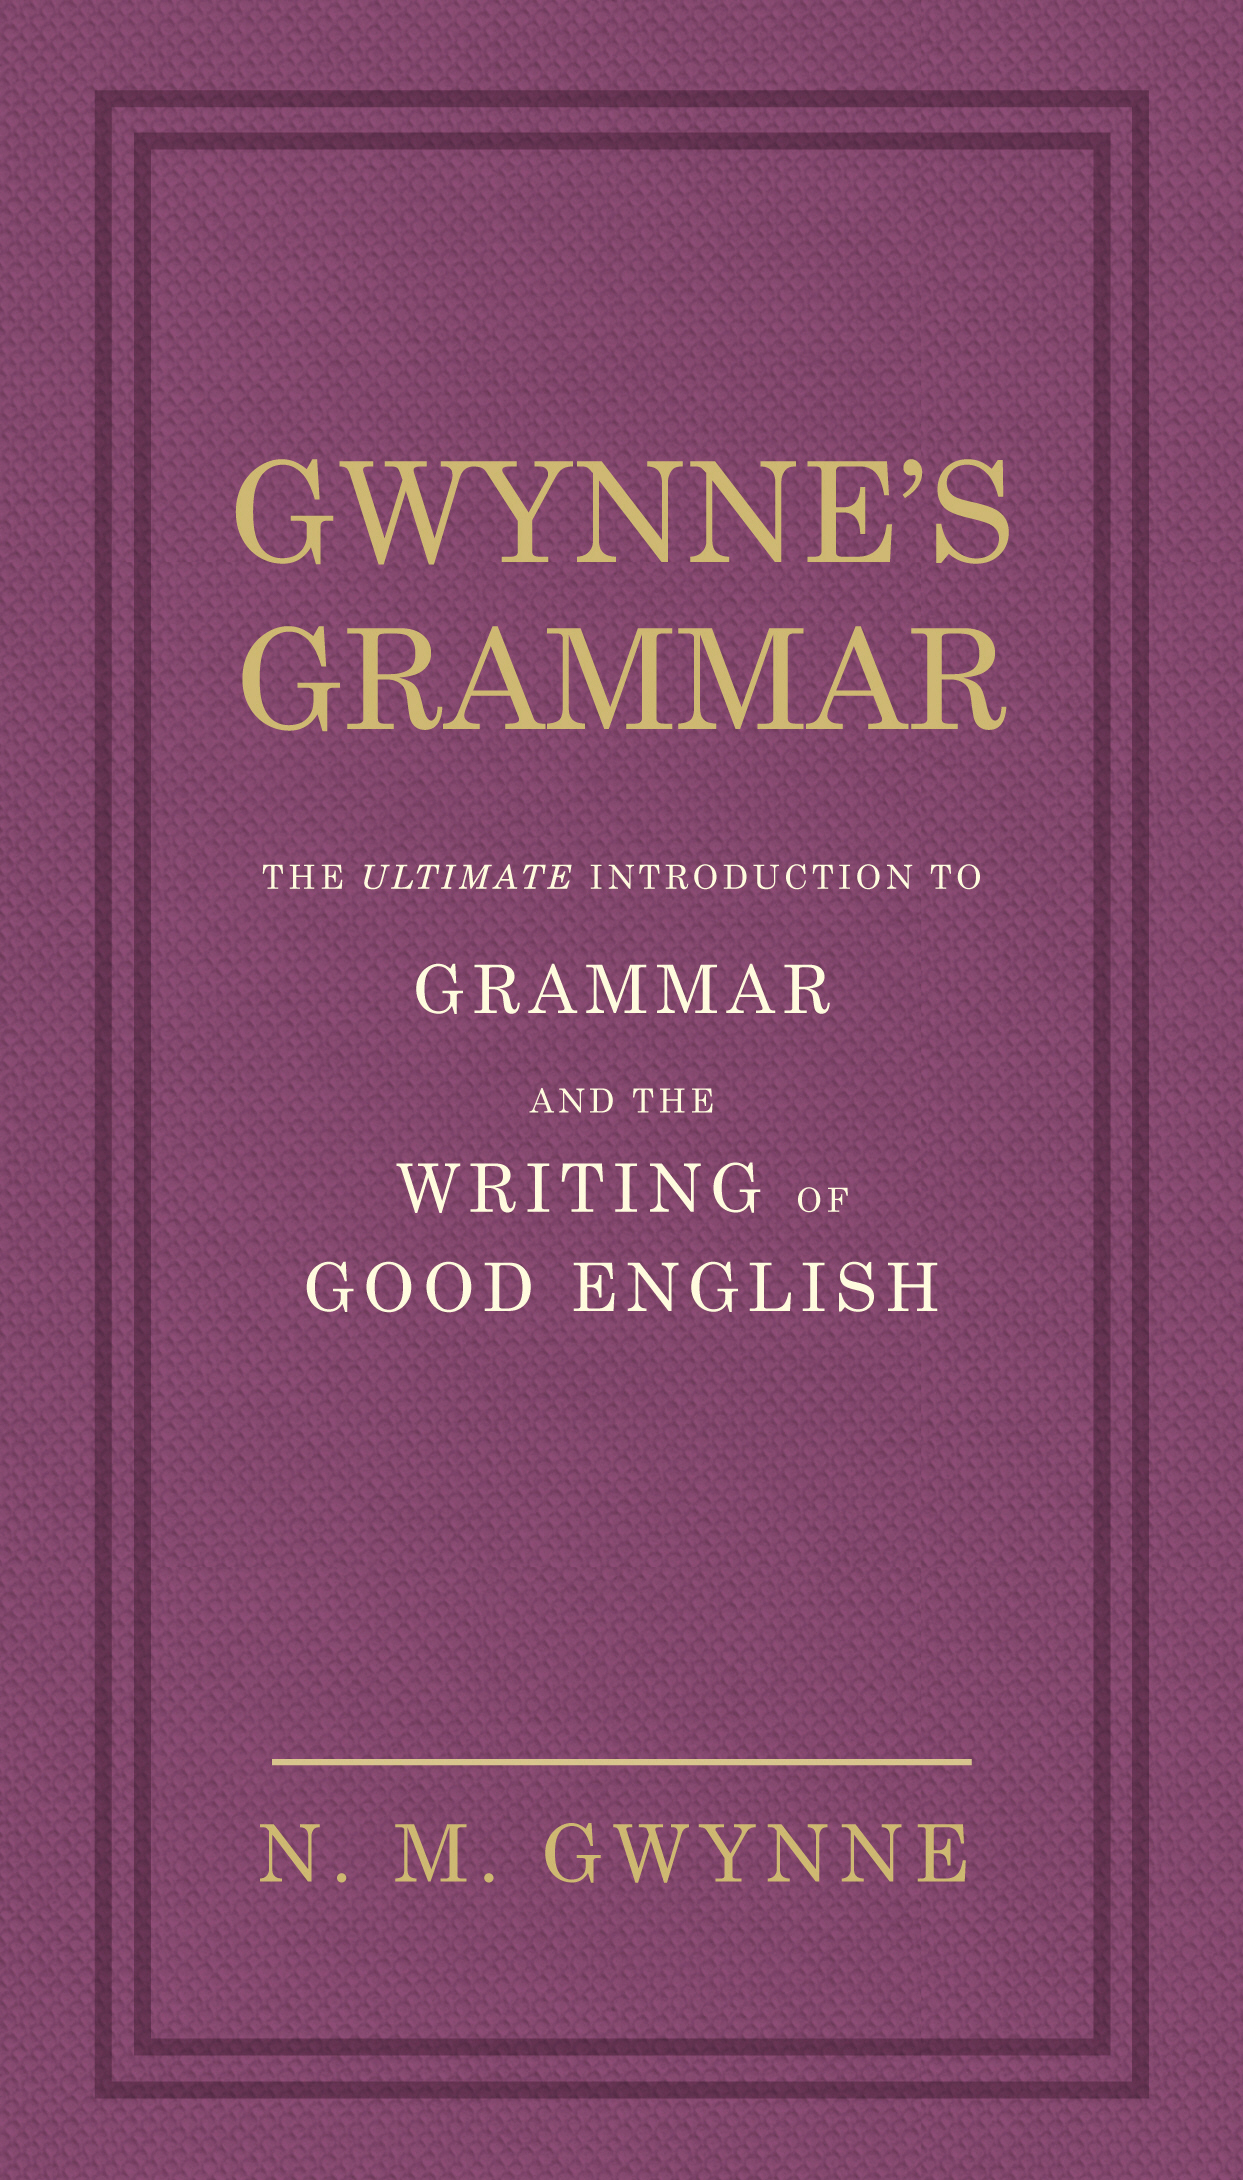 Gwynne's Grammar The Ultimate Introduction to Grammar and the Writing of Good English. Incorporating also Strunk?s Guide to Style.